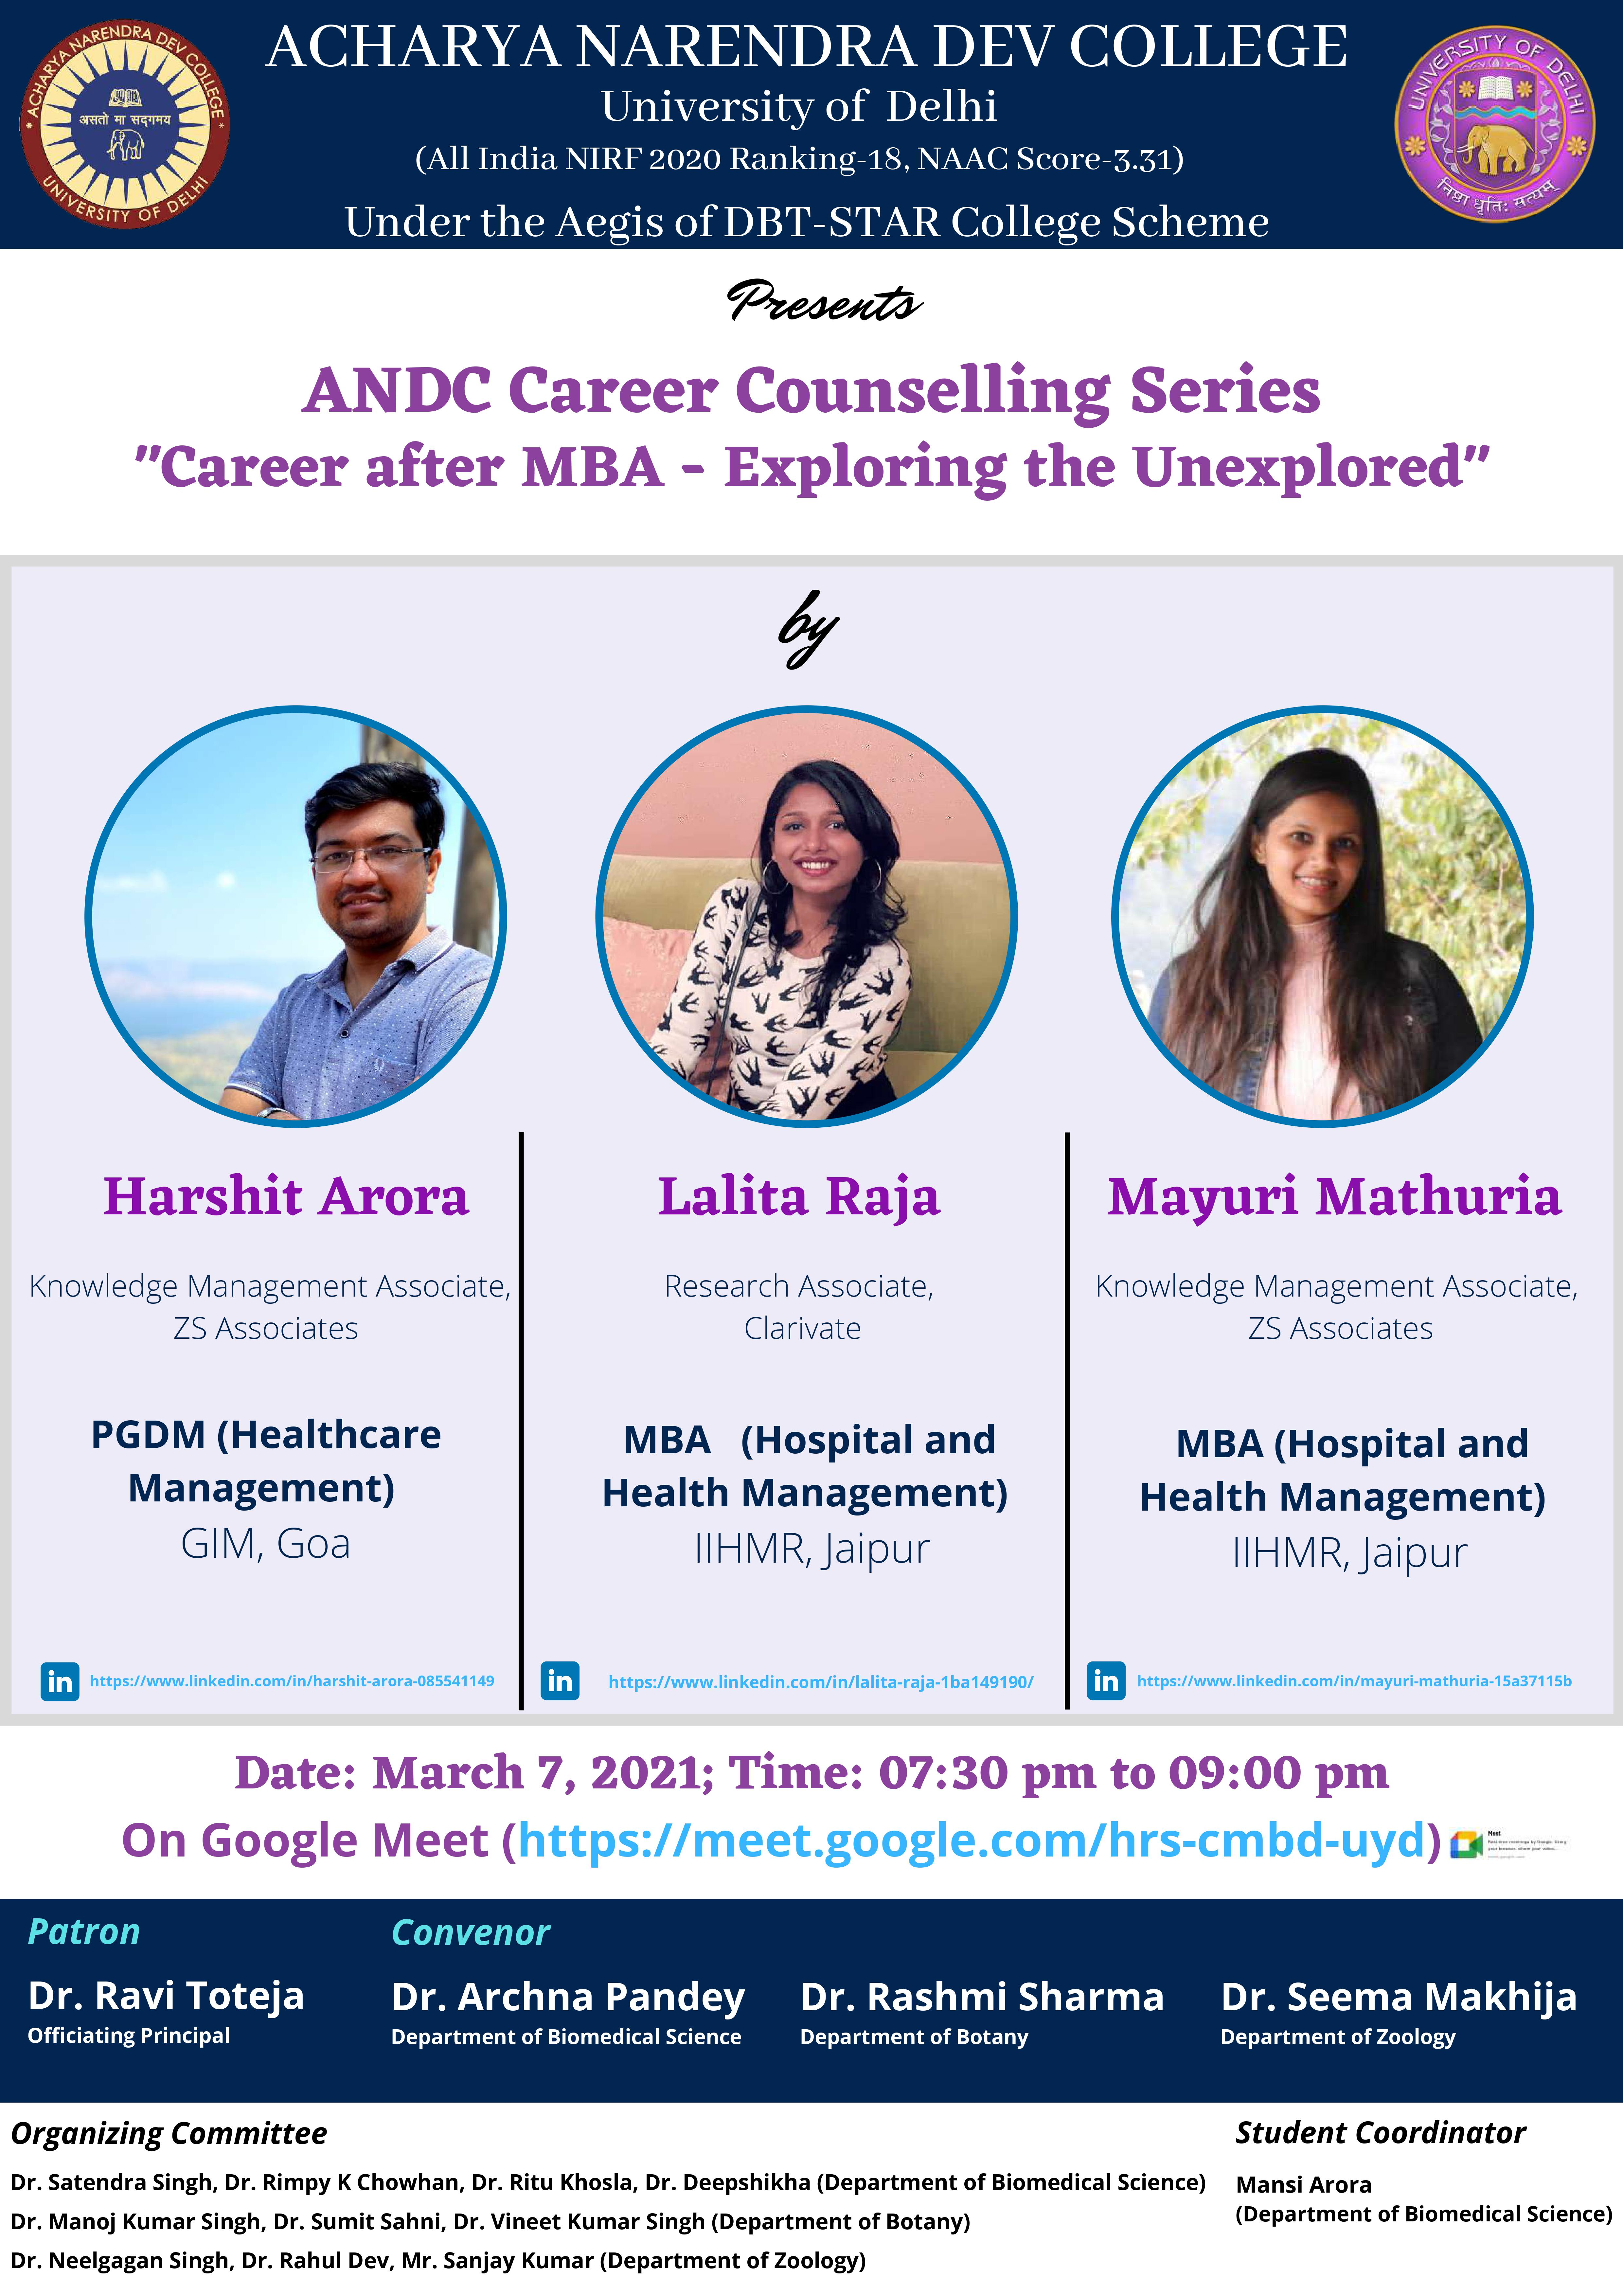 "ANDC Career Counselling Series by Harshit Arora Lalita Raja Mayuri Mathuria ""Career after MBA - Exploring the Unexplored"""